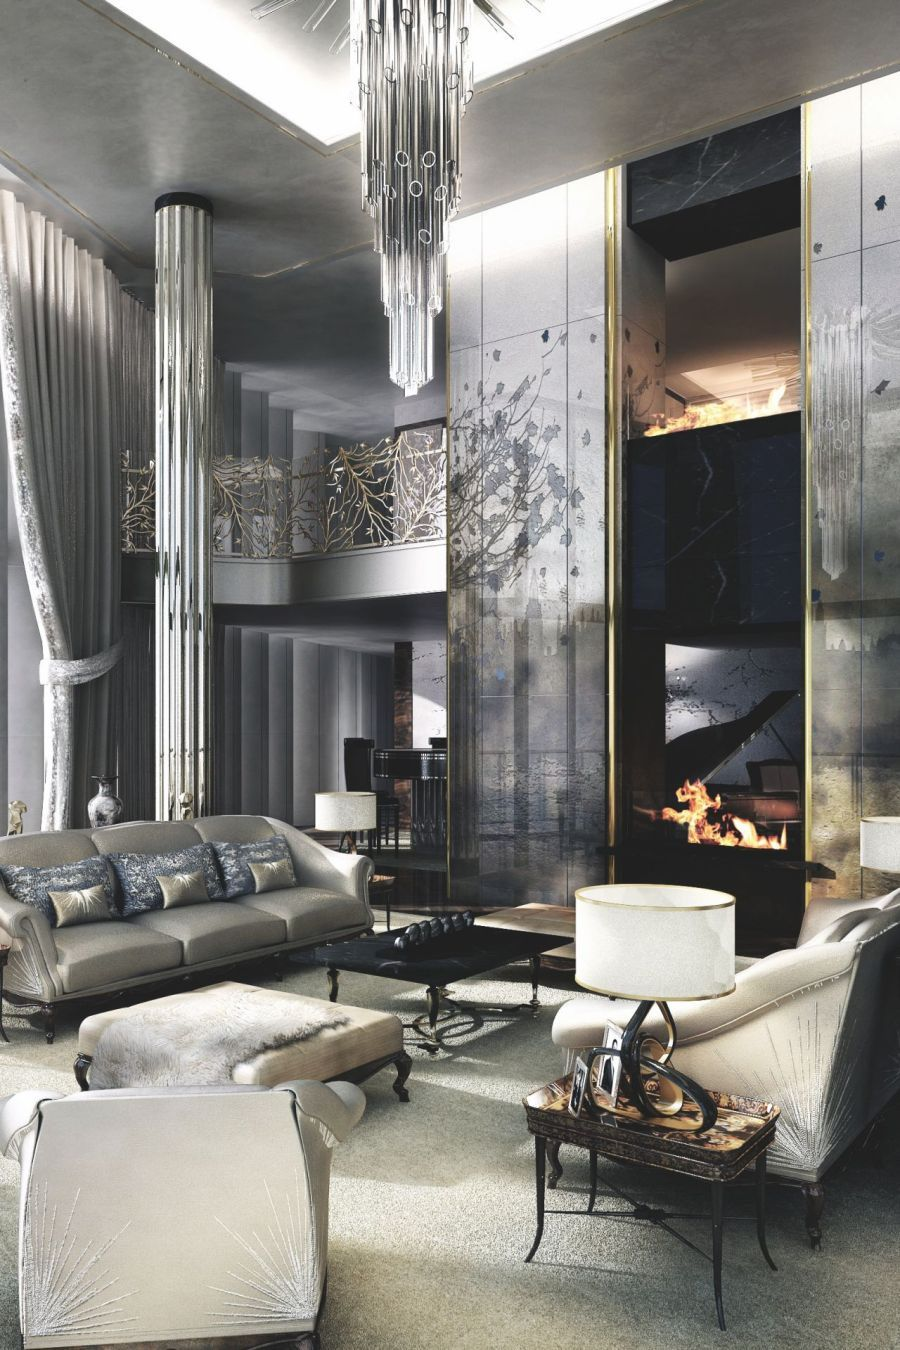 how to choose curtains for living room 2021